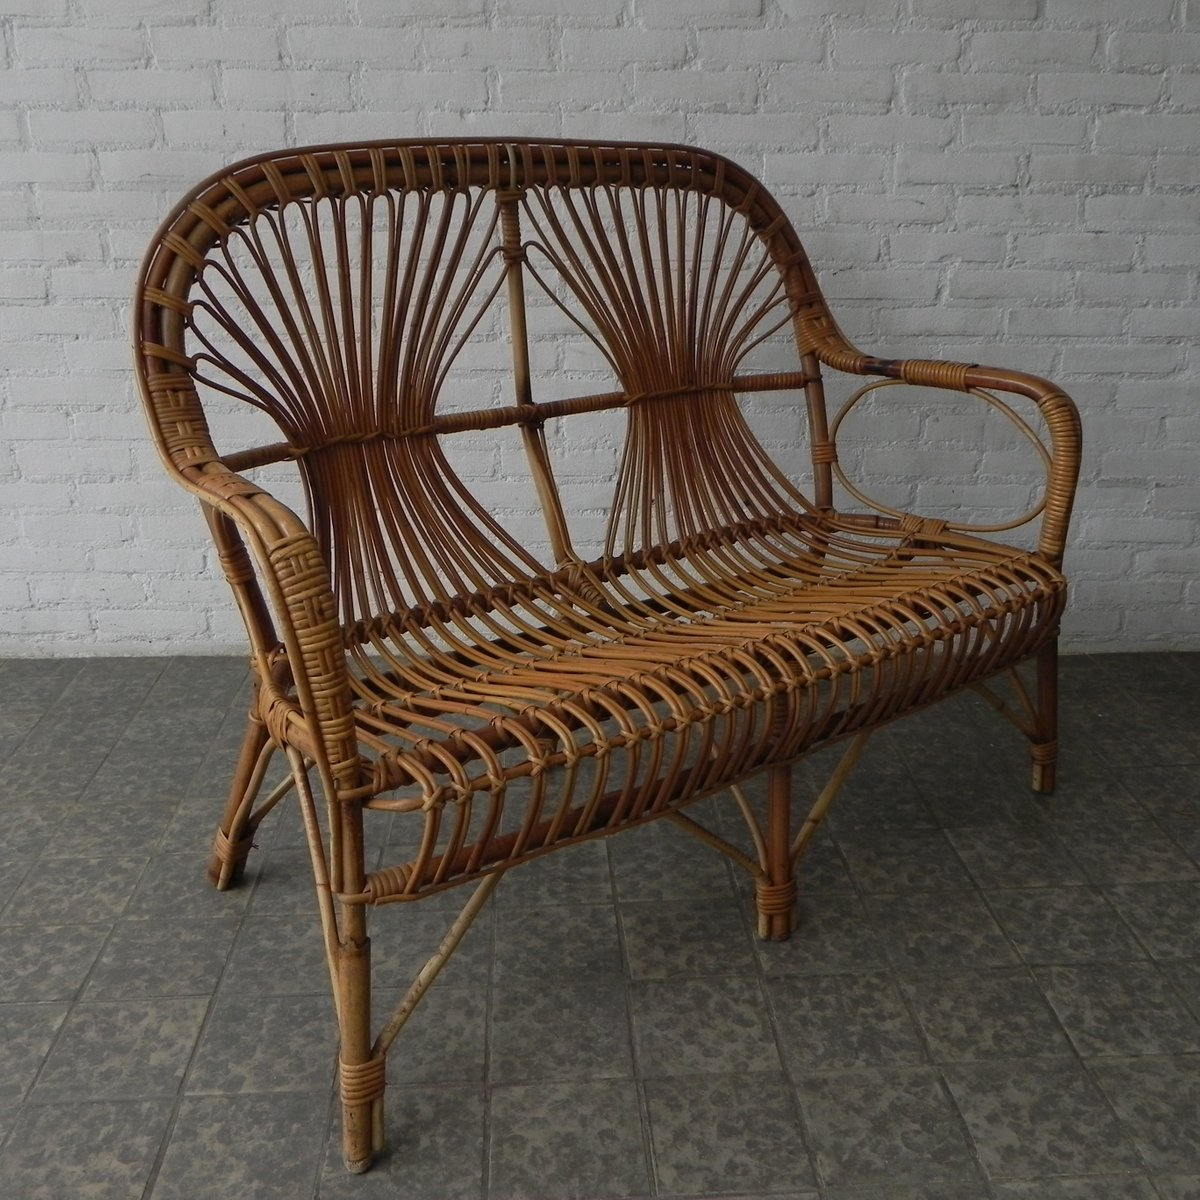 vintage bamboo  rattan bench s for sale at pamono - vintage bamboo  rattan bench s